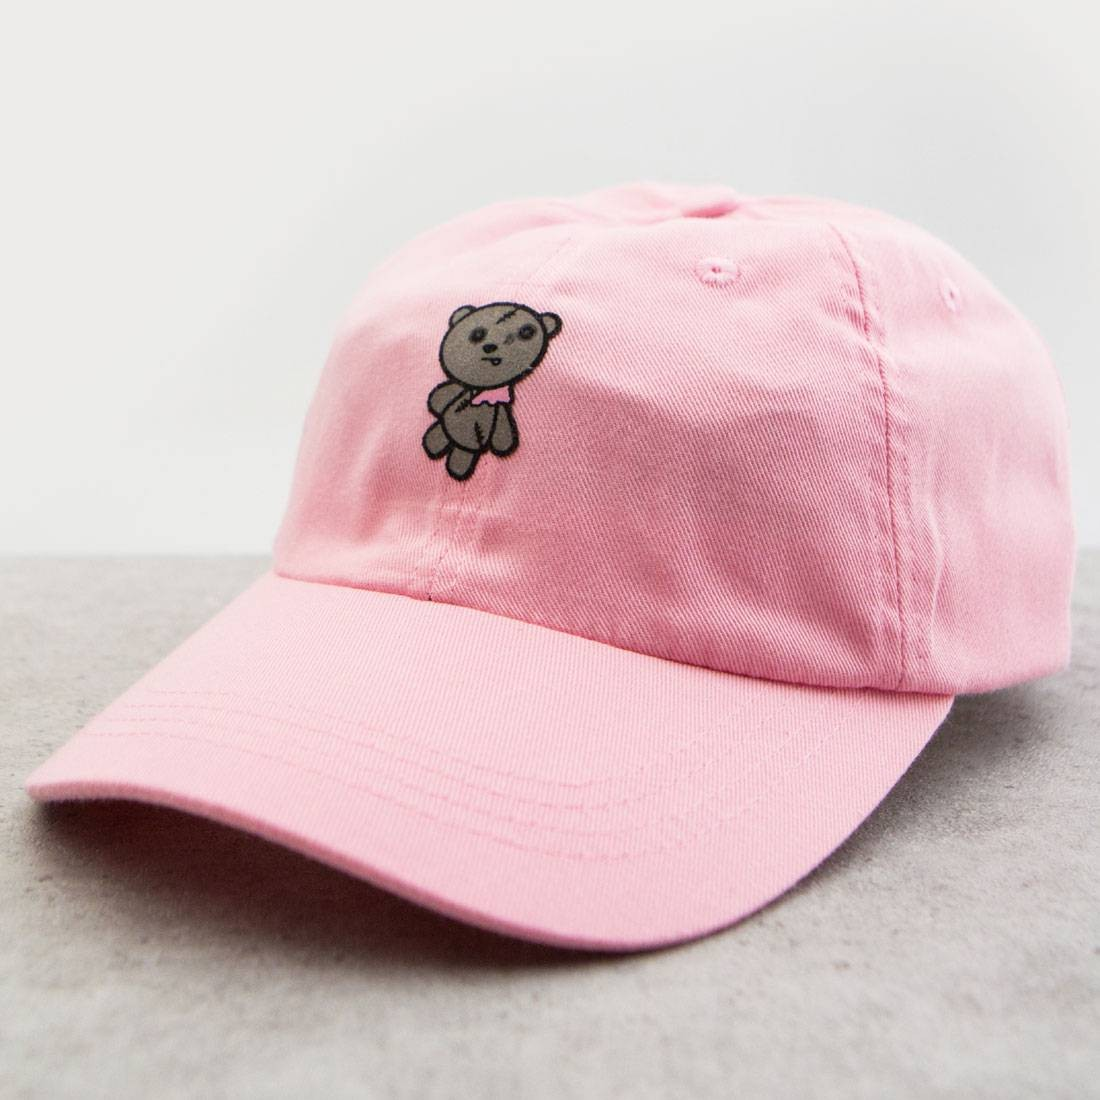 BAIT x Minion Monsters ZombieTim Dad Cap (light pink)